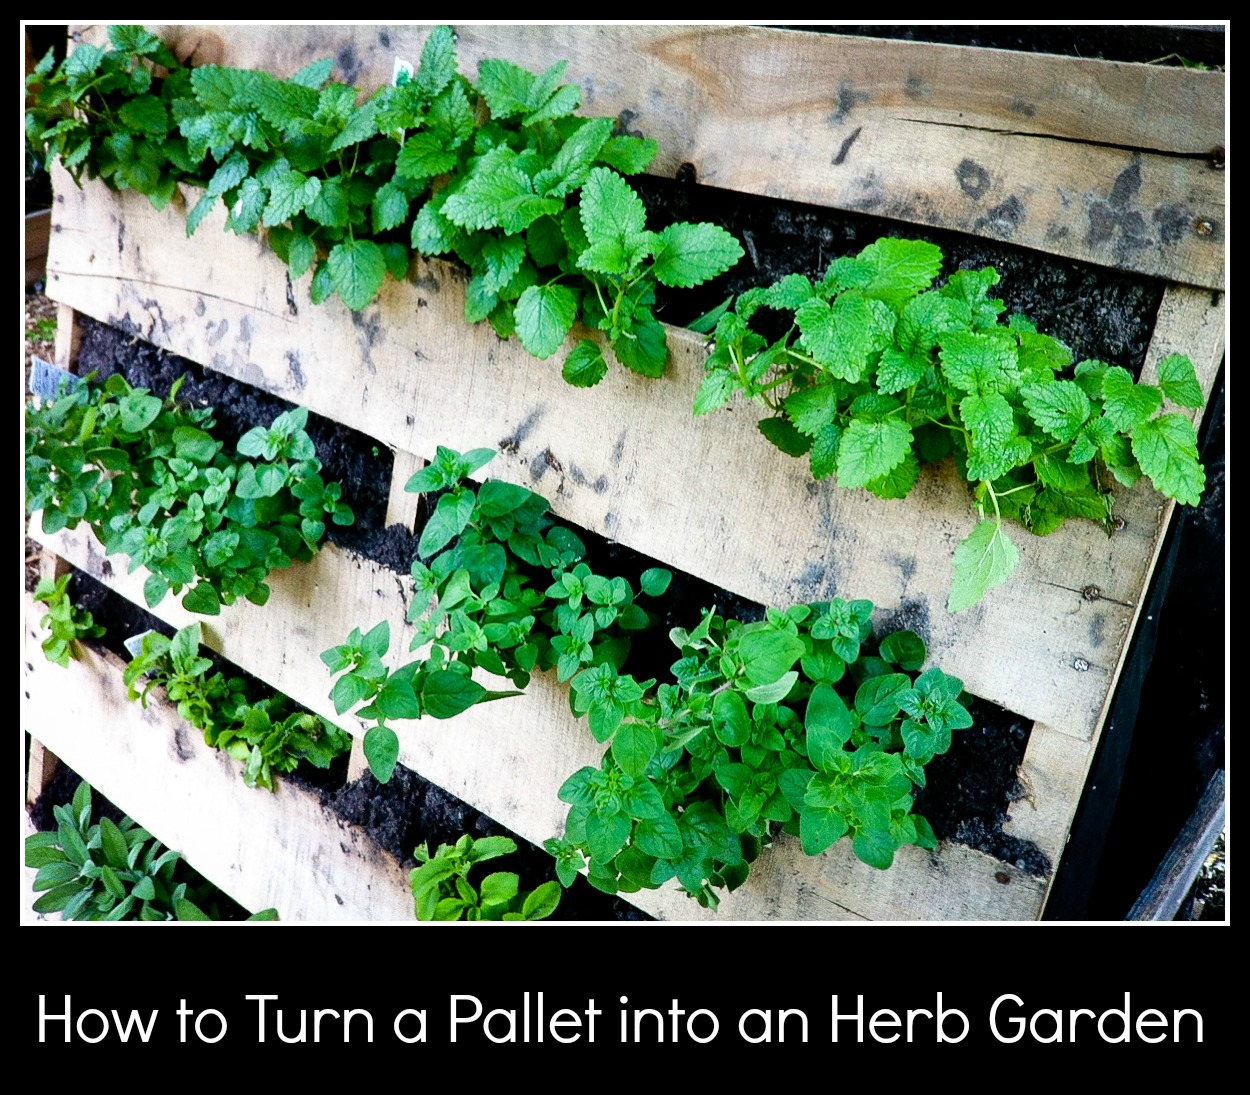 How To Turn A Pallet Into An Herb Gardenjpg